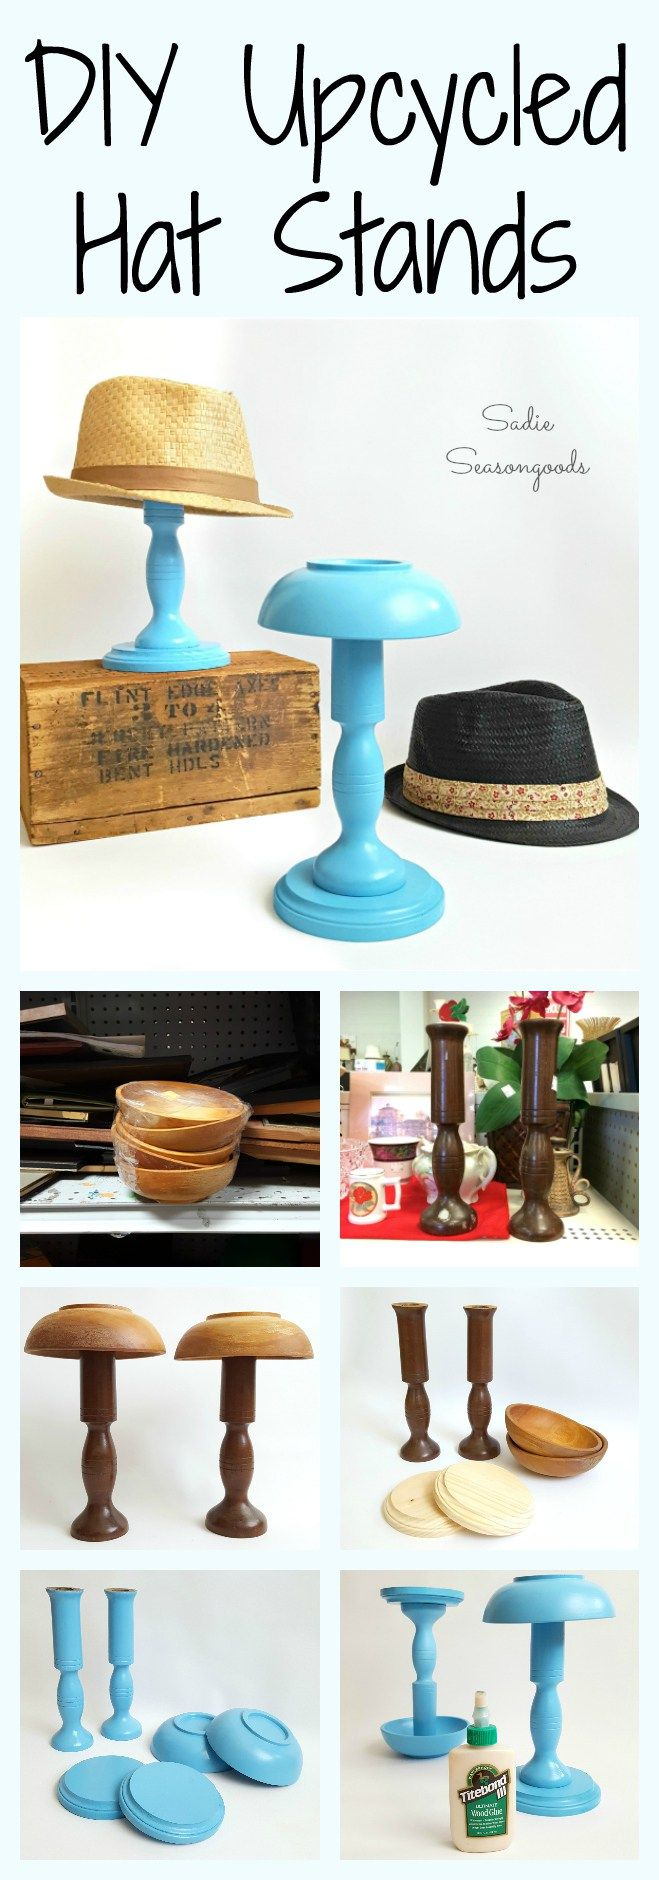 DIY Hat StandI really like this decorative and practical DIY Hat Stand. To make this hat stand, all you need is a candlestick, bowl, and wooden plaque. Find the tutorial for DIY Hat Stand from Sadie Seasongoods here.